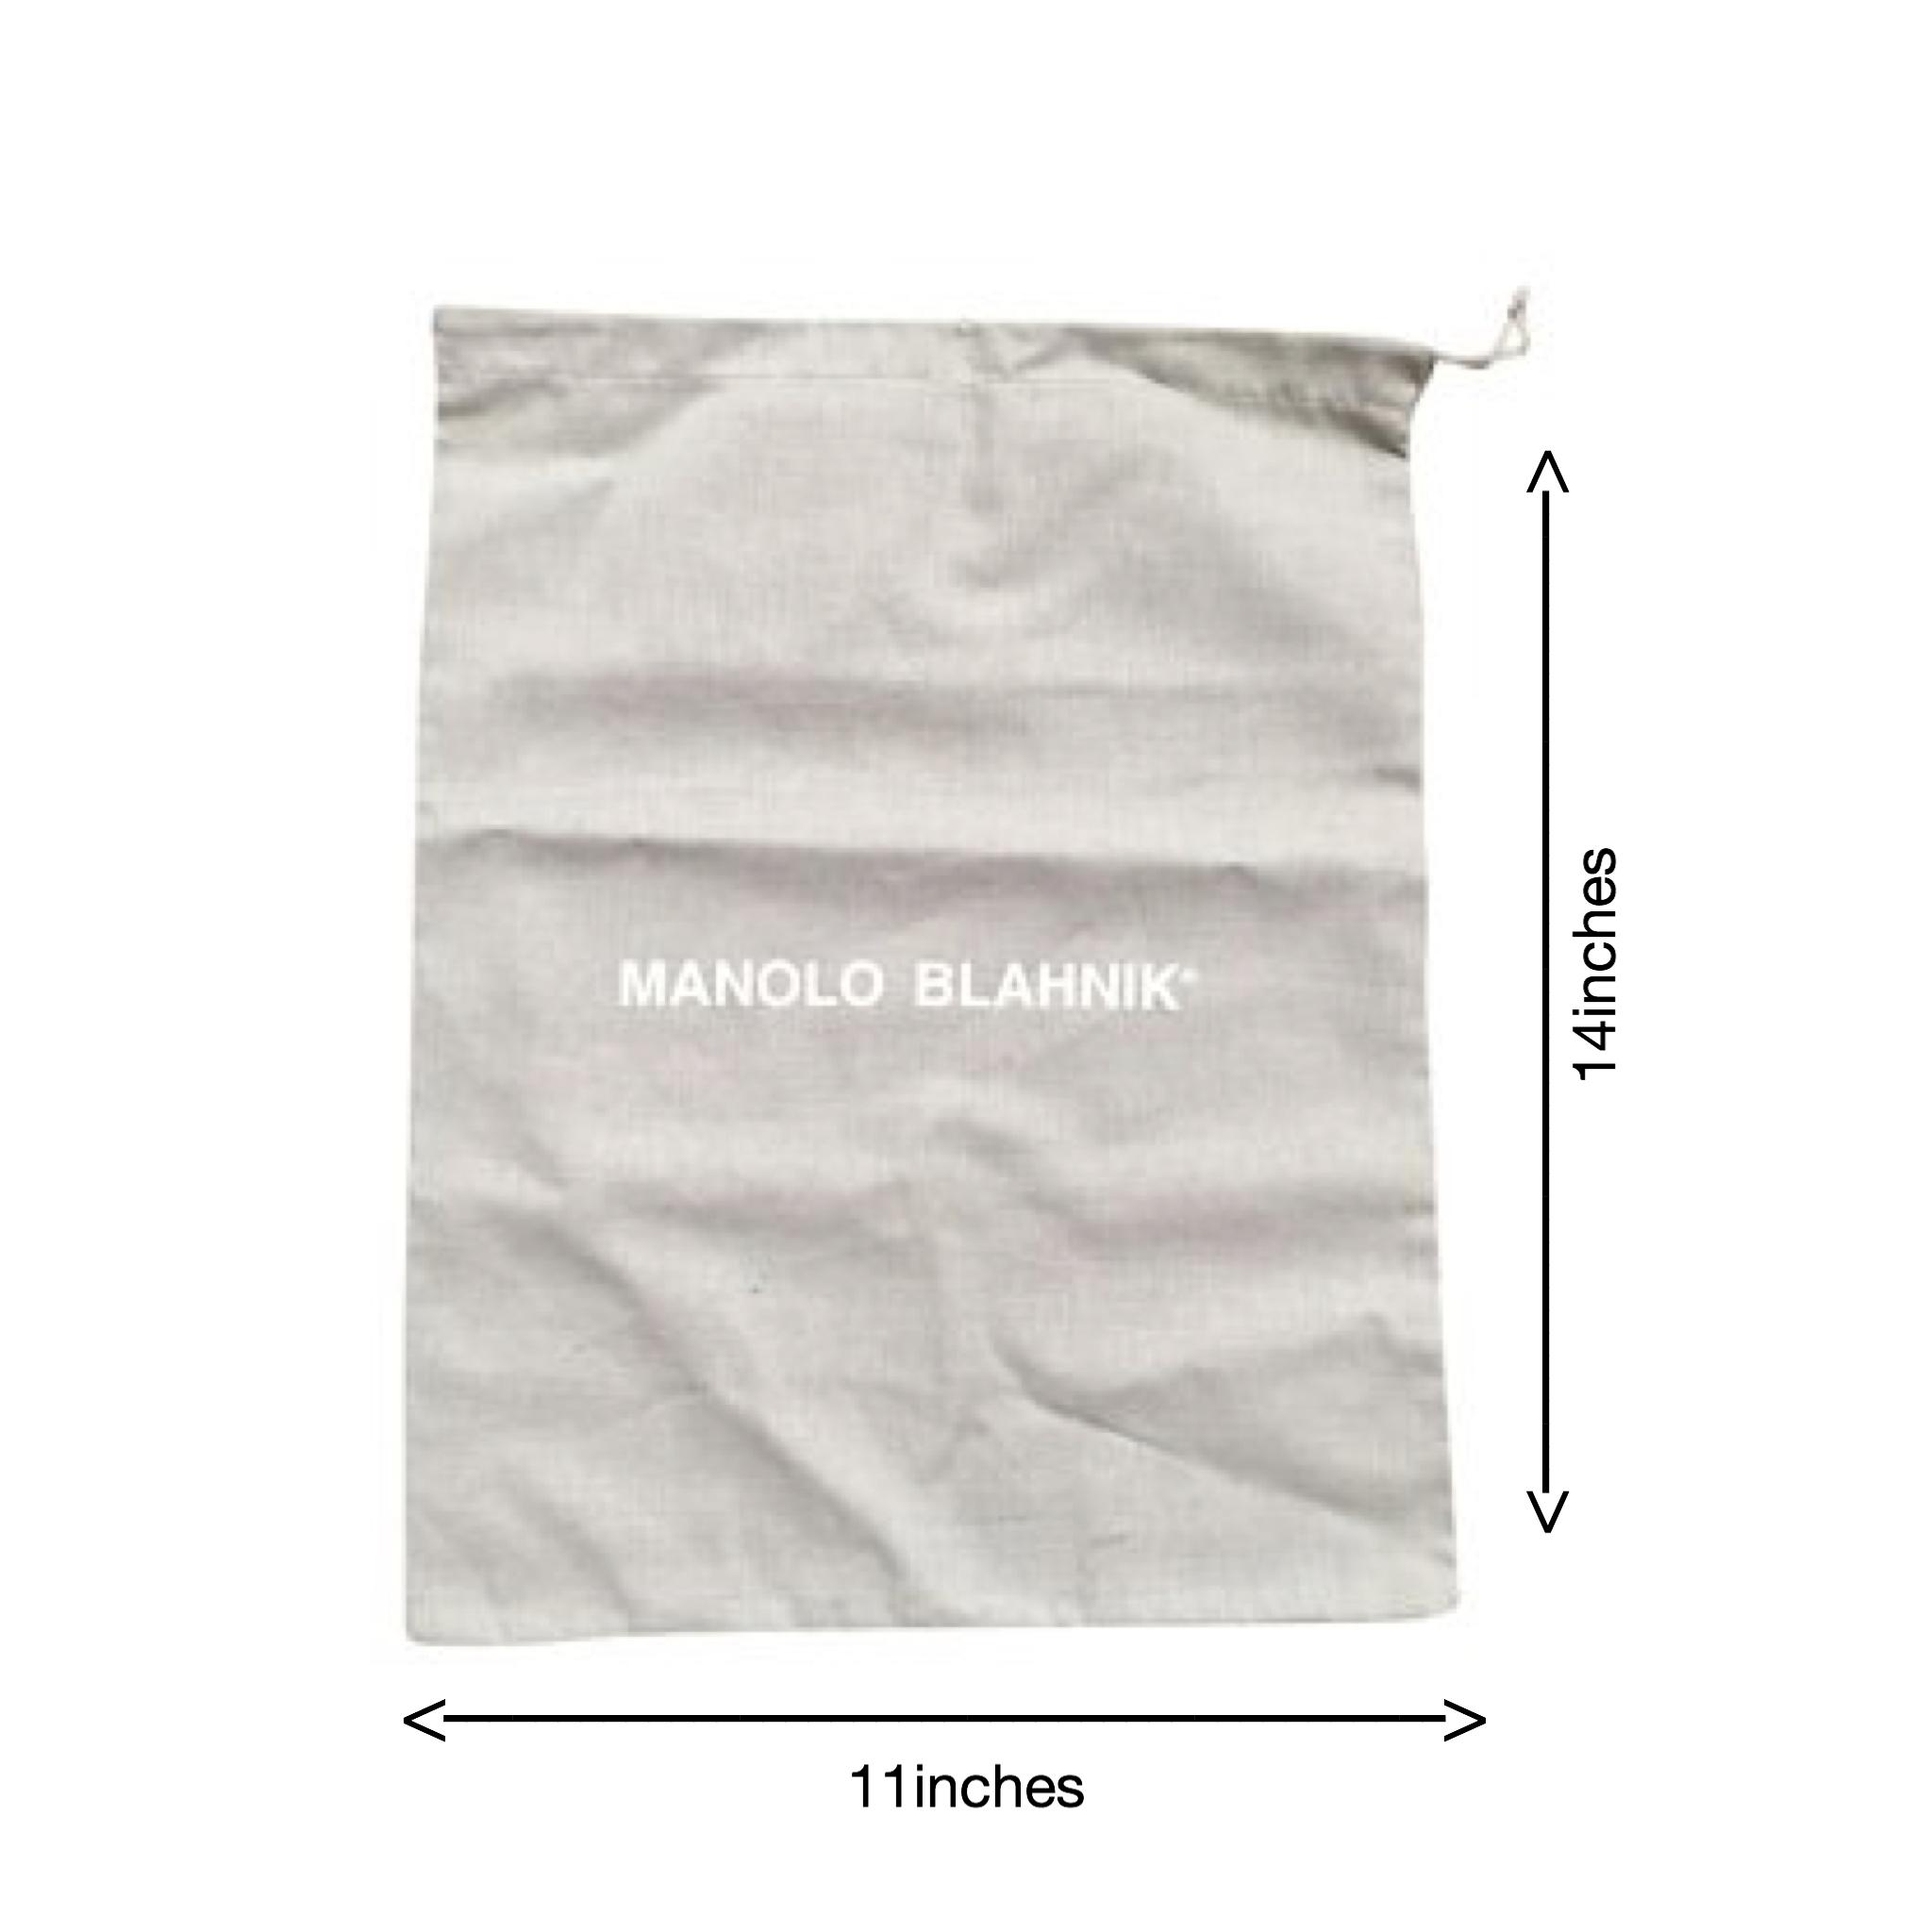 Manolo Blahnik shoe dust bag